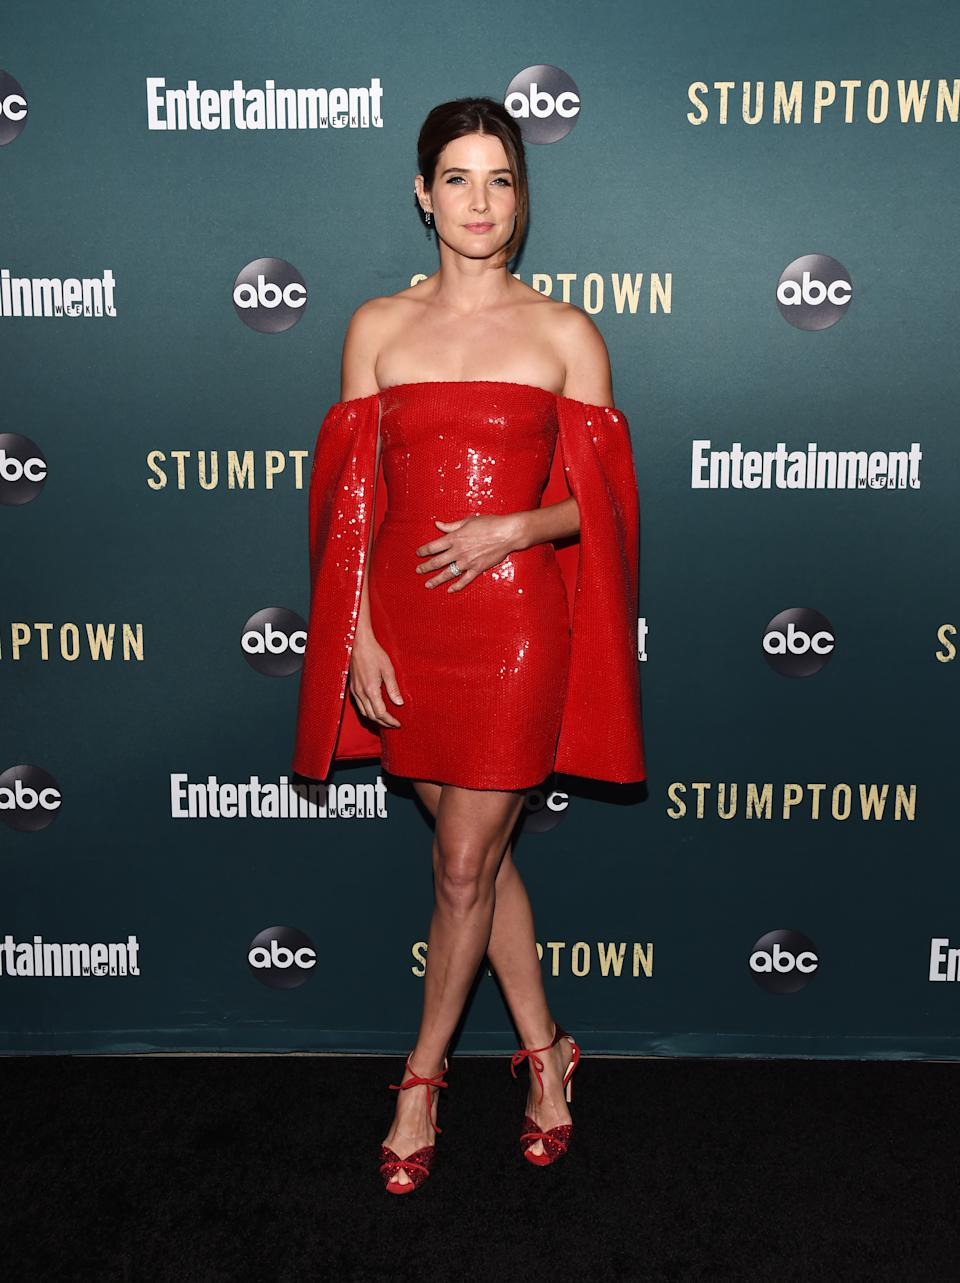 Lady in Red: Cobie Smulders in einem eleganten Mini-Dress von Alex Perry. (Bild: Amanda Edwards/WireImage)